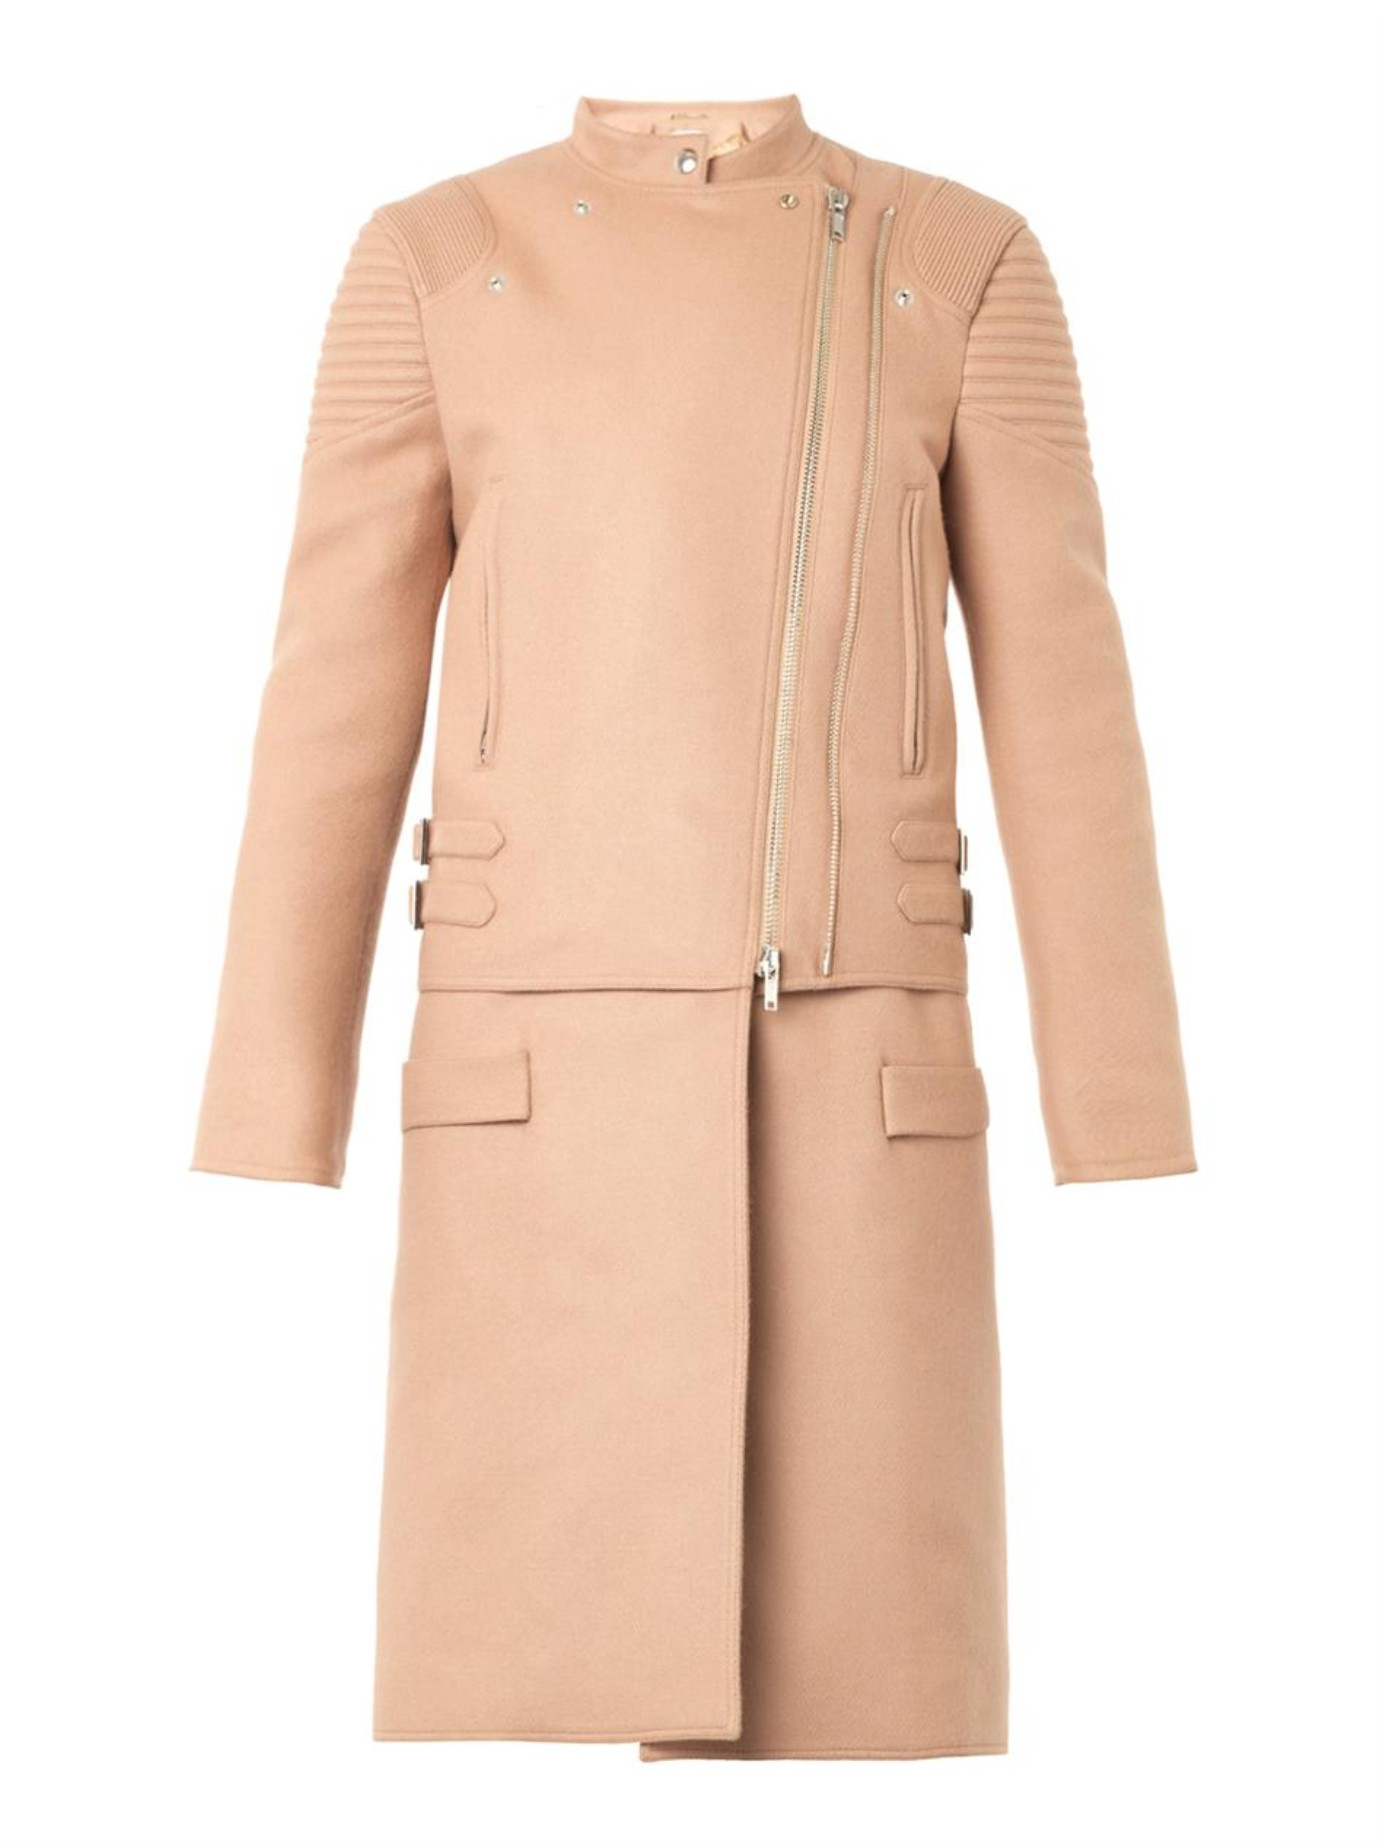 Givenchy Felted-Wool Biker Coat in Natural | Lyst